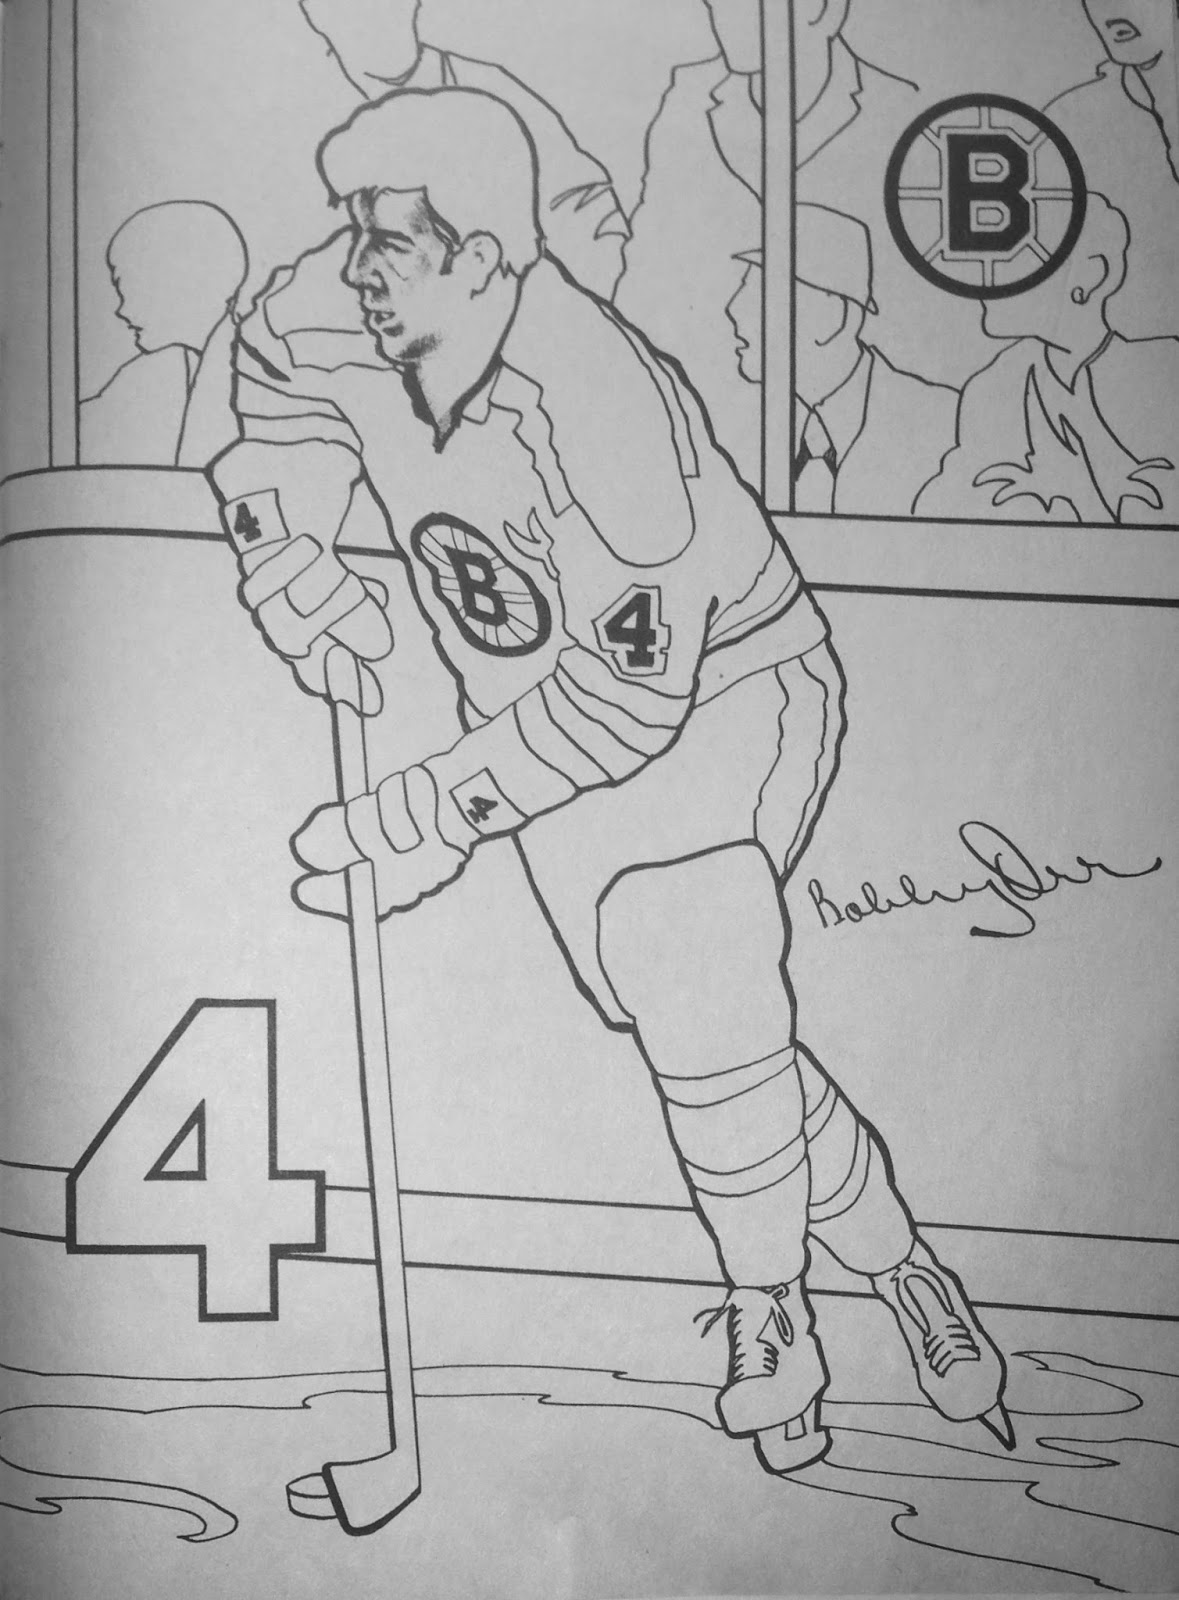 boston bruins coloring pictures boston bruins 1972 coloring book boston bruins pictures coloring